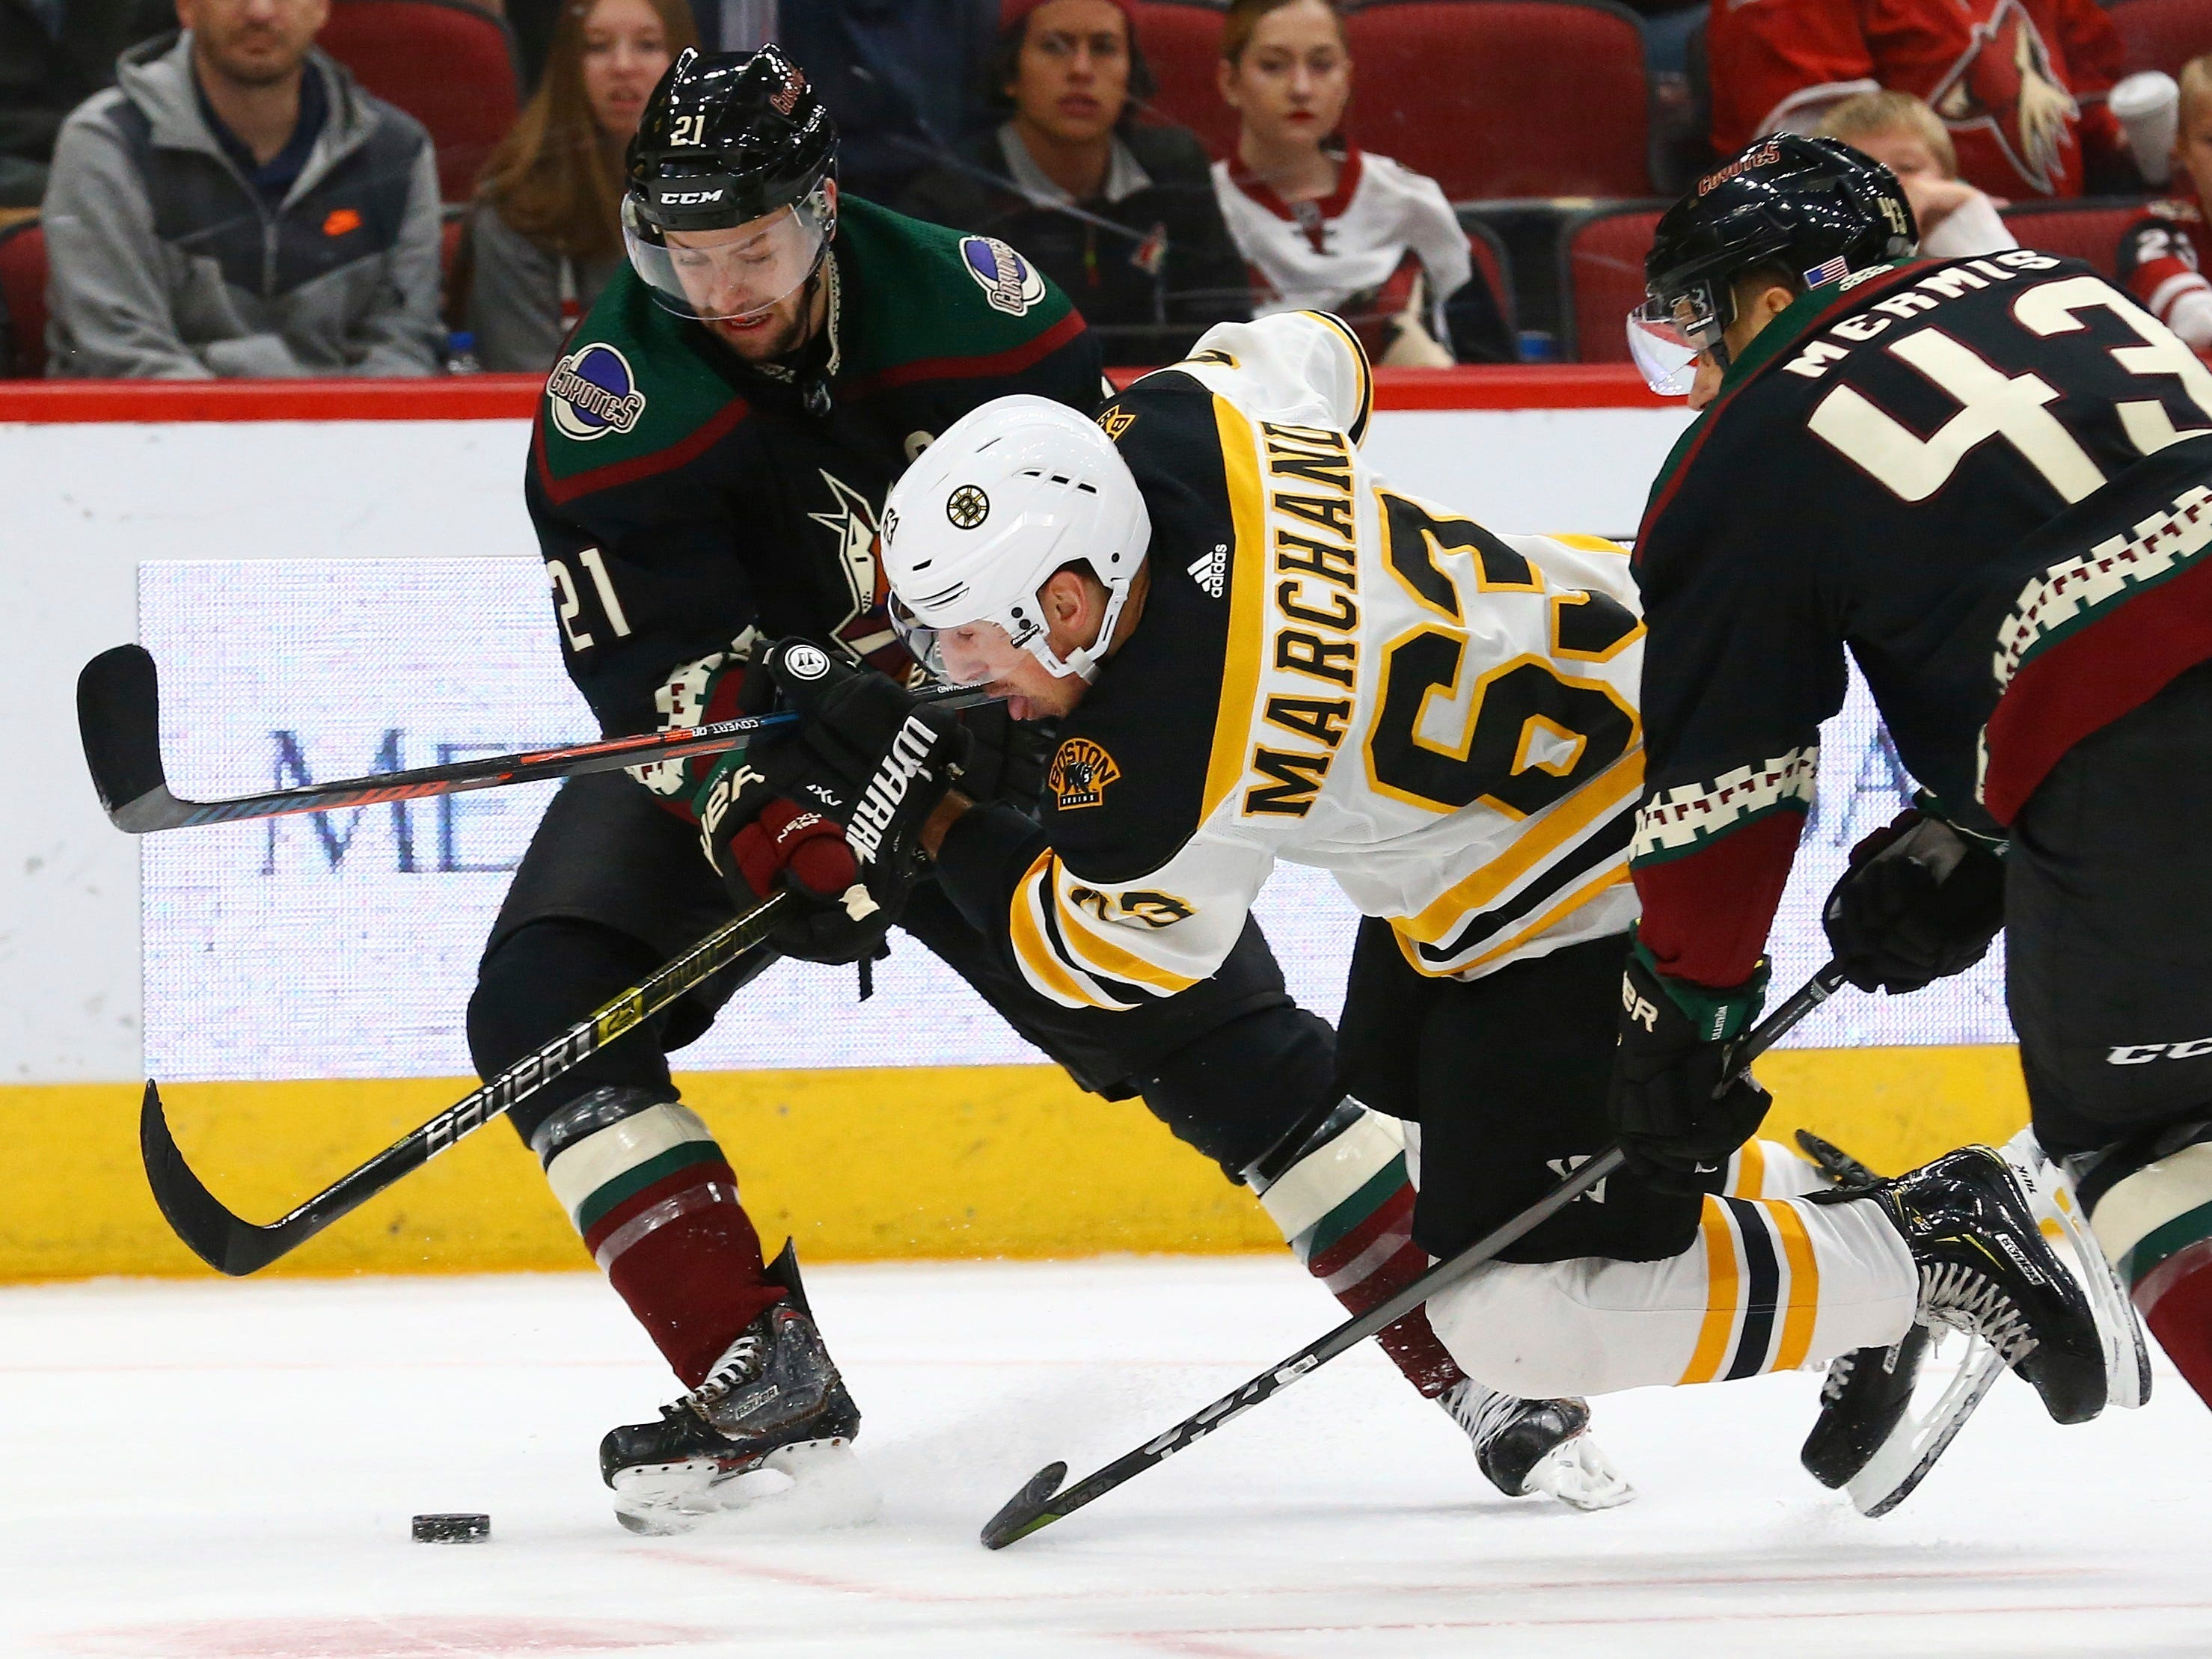 Boston Bruins left wing Brad Marchand (63) gets tripped up by Arizona Coyotes center Derek Stepan (21) and defenseman Dakota Mermis (43) during the third period of an NHL hockey game Saturday, Nov. 17, 2018, in Glendale, Ariz. The Bruins won 2-1. (AP Photo/Ross D. Franklin)